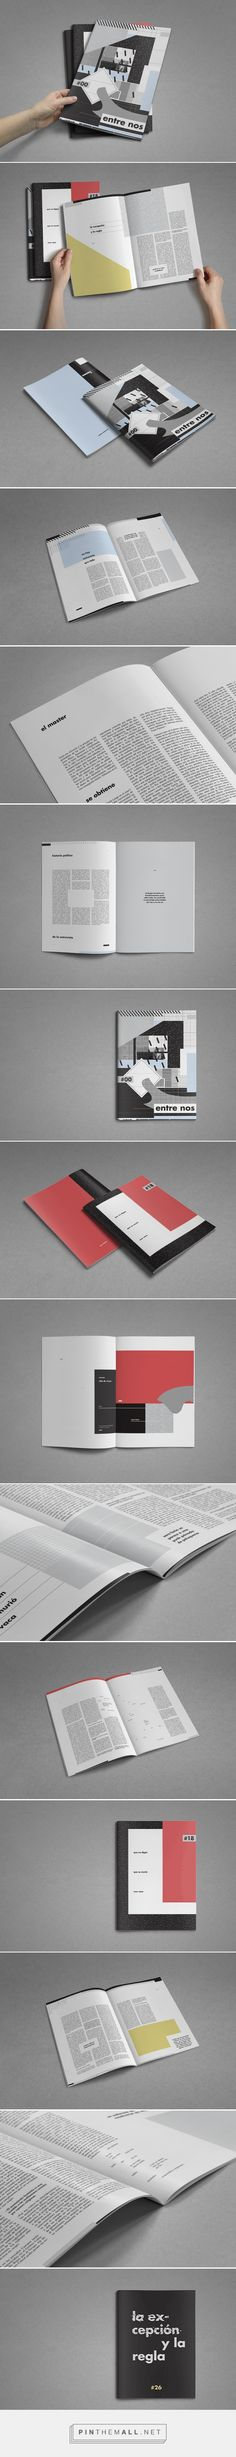 Vida de Vivos⎢Editorial on Behance... - a grouped images picture - Pin Them All